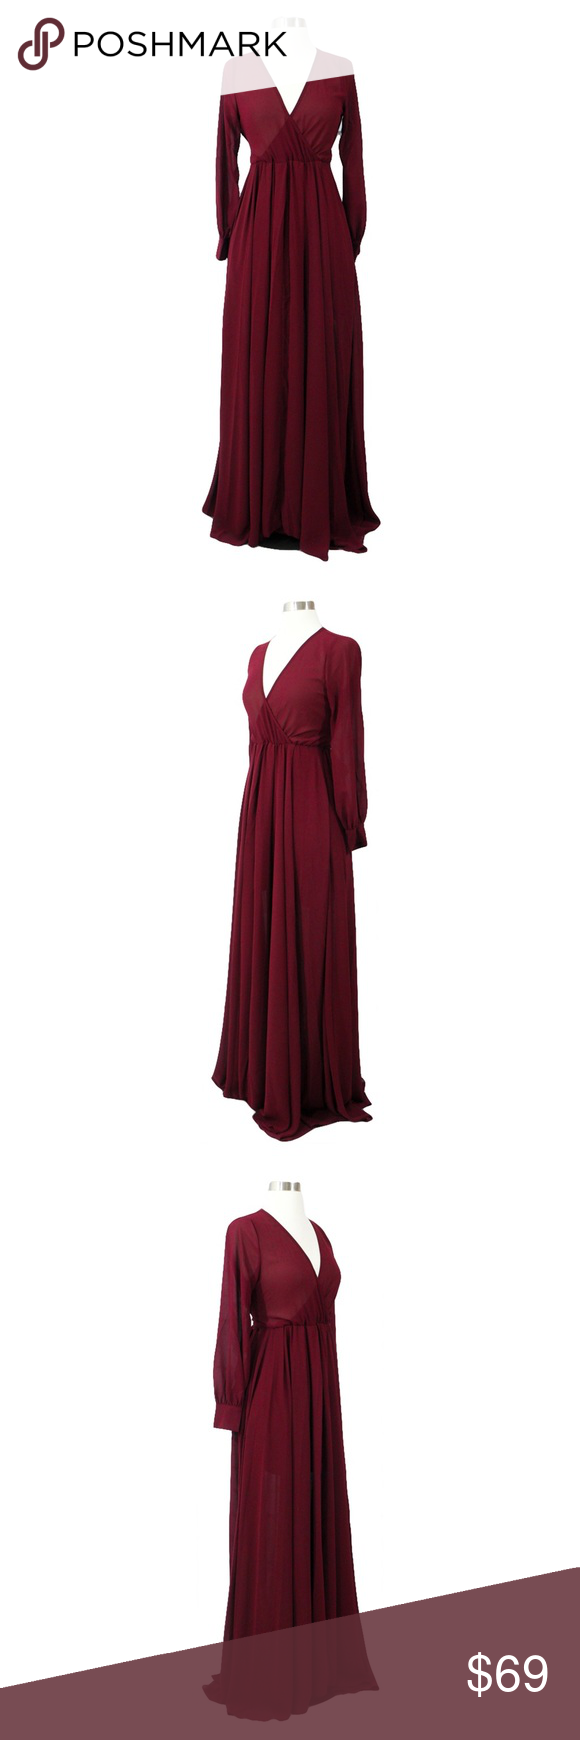 Final priceburgundy red chiffon maxi dress boutique plunge